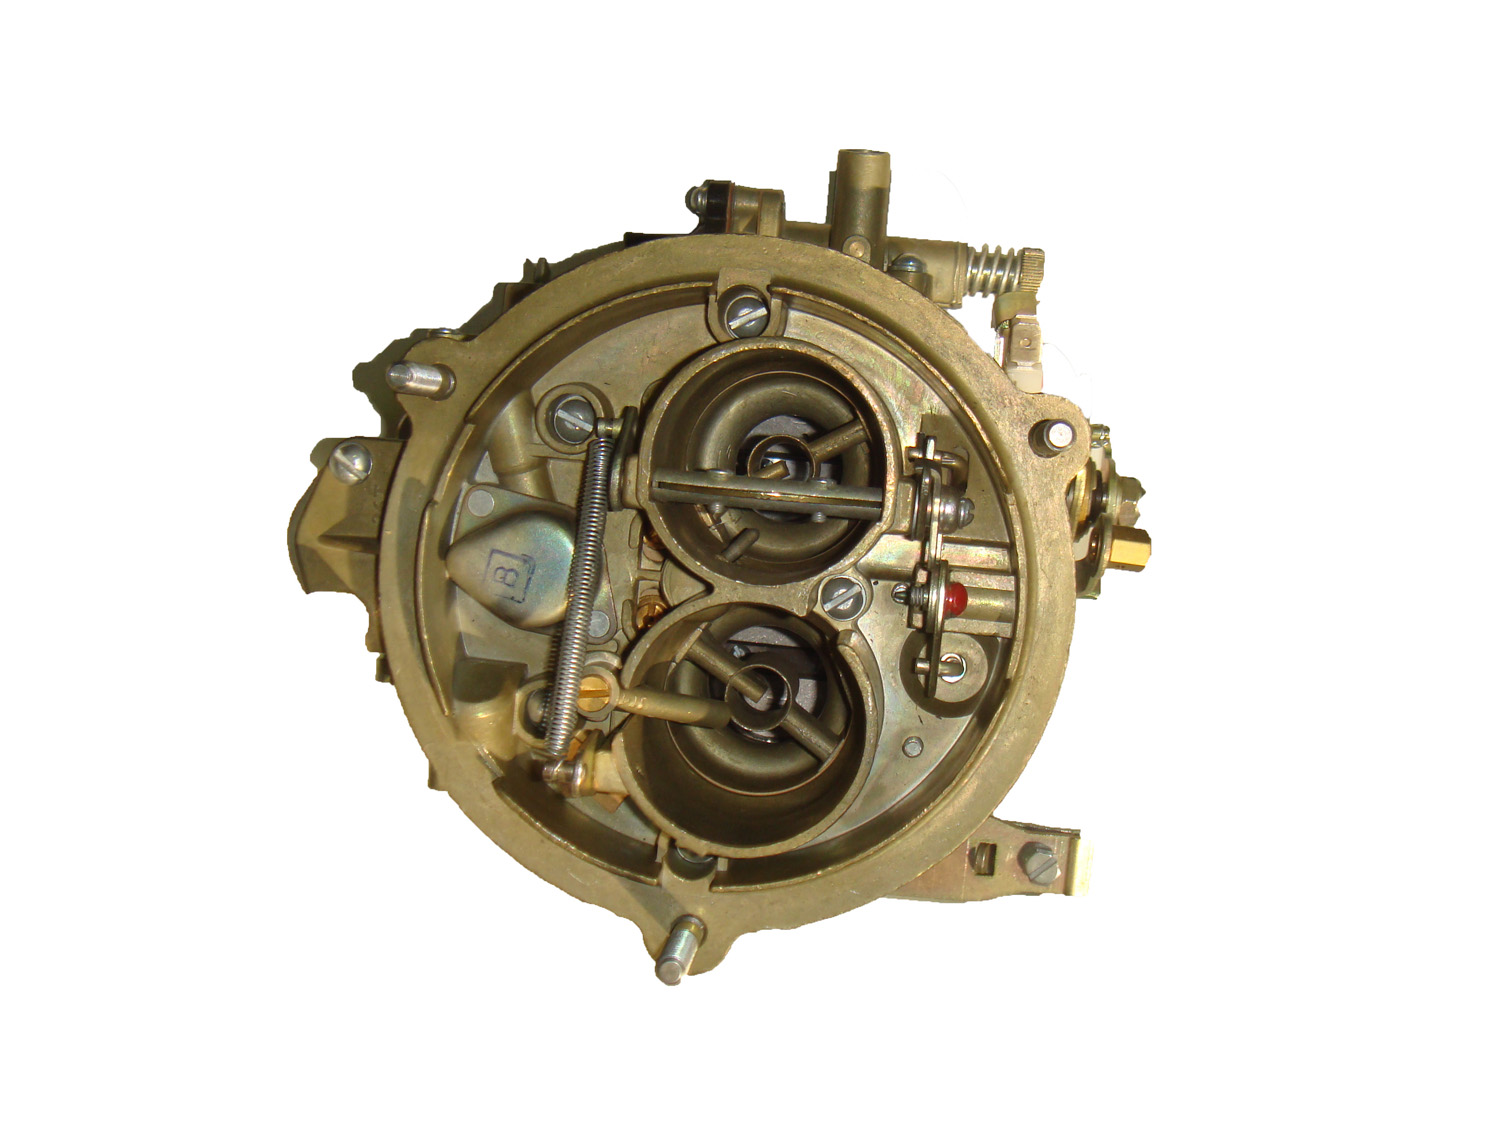 Uaz carburetor engine 4218